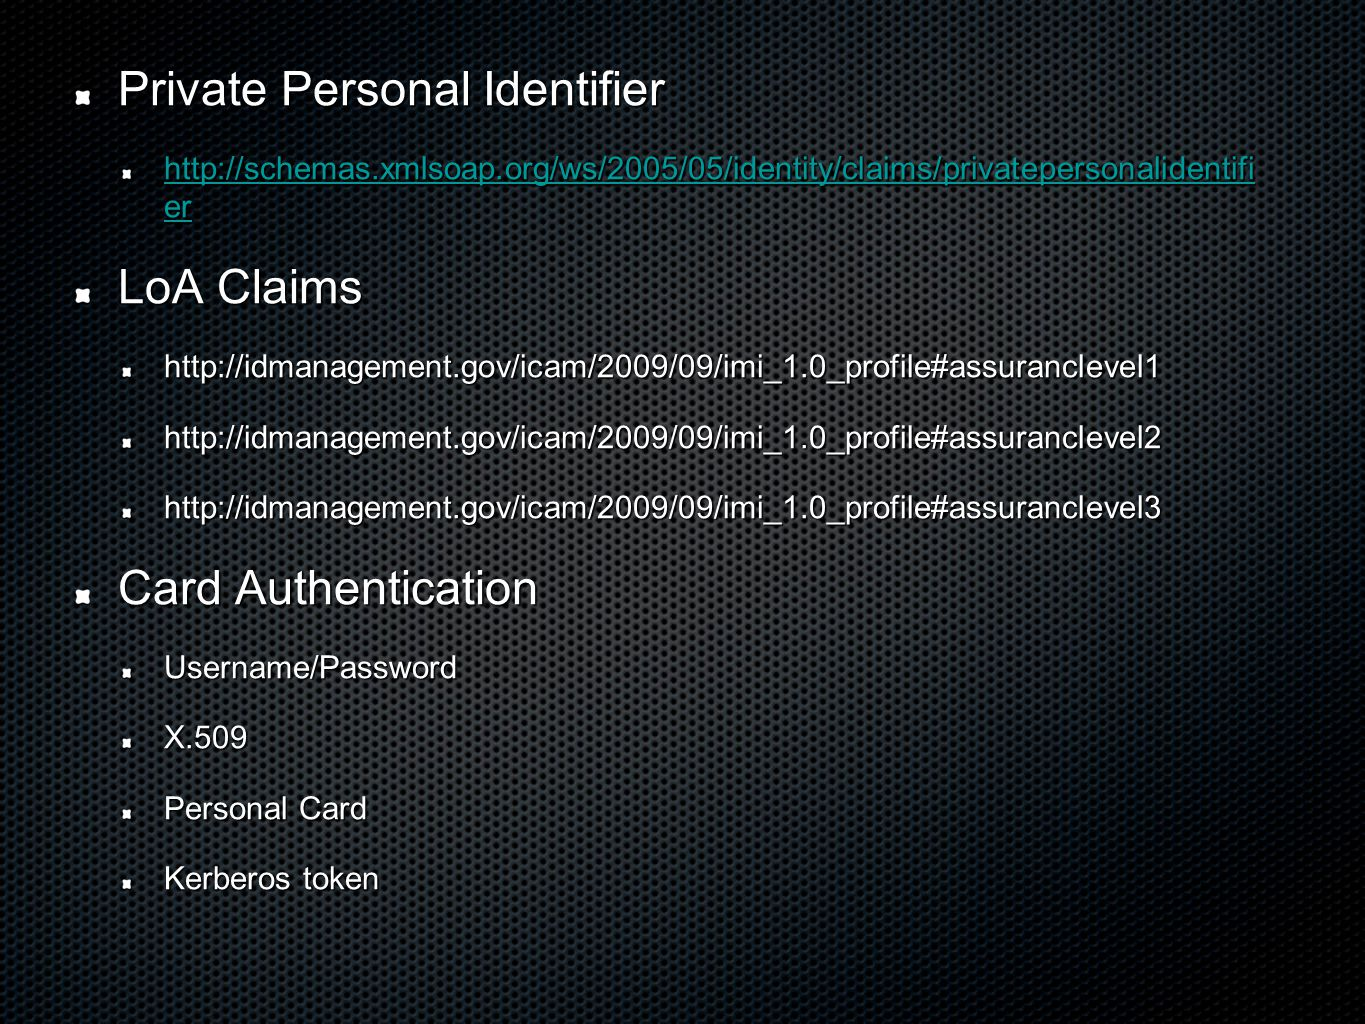 Private Personal Identifier http://schemas.xmlsoap.org/ws/2005/05/identity/claims/privatepersonalidentifi er http://schemas.xmlsoap.org/ws/2005/05/ide